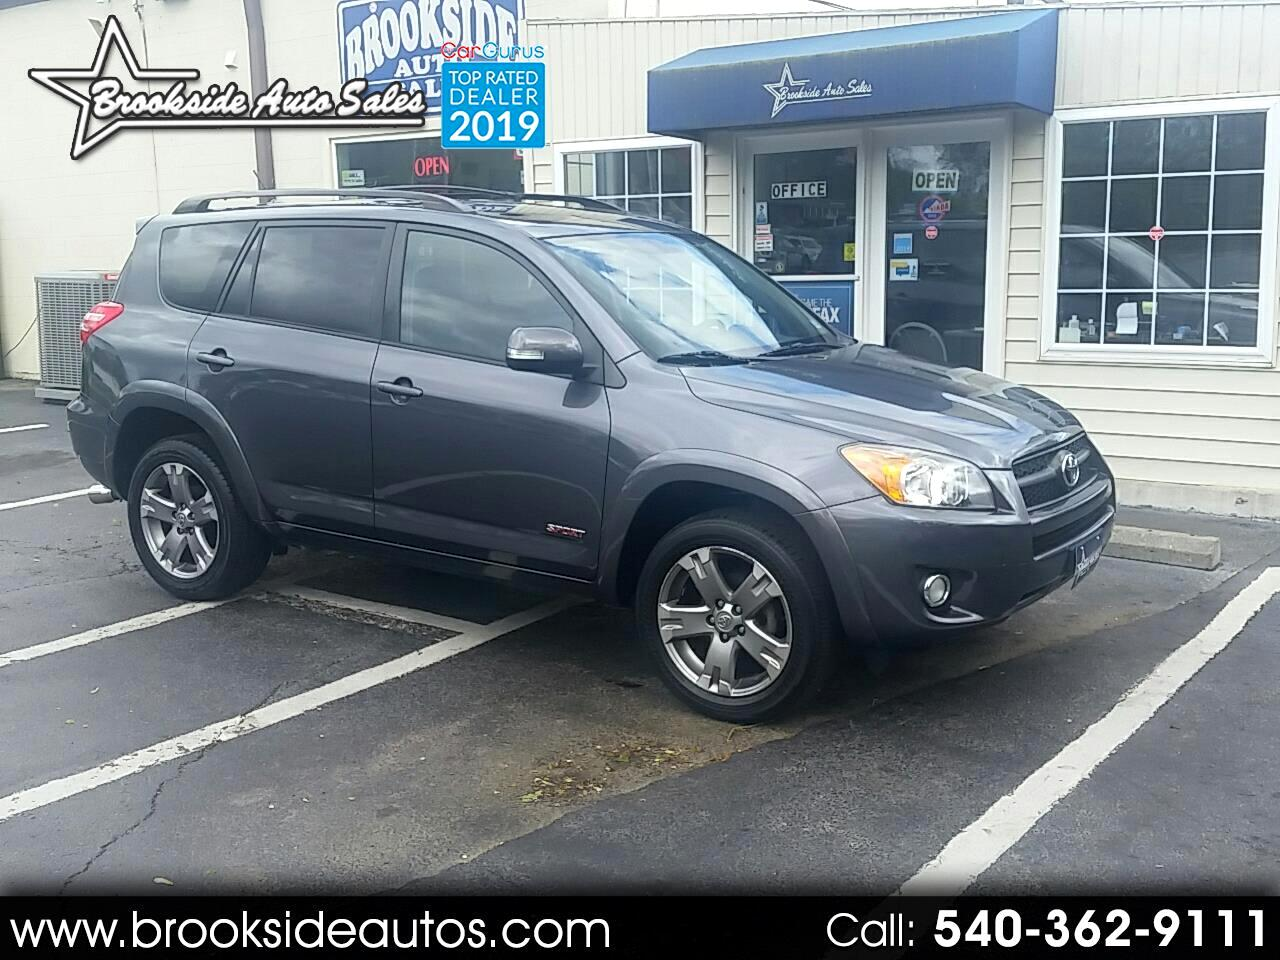 2010 Toyota RAV4 FWD 4dr 4-cyl 4-Spd AT Sport (Natl)